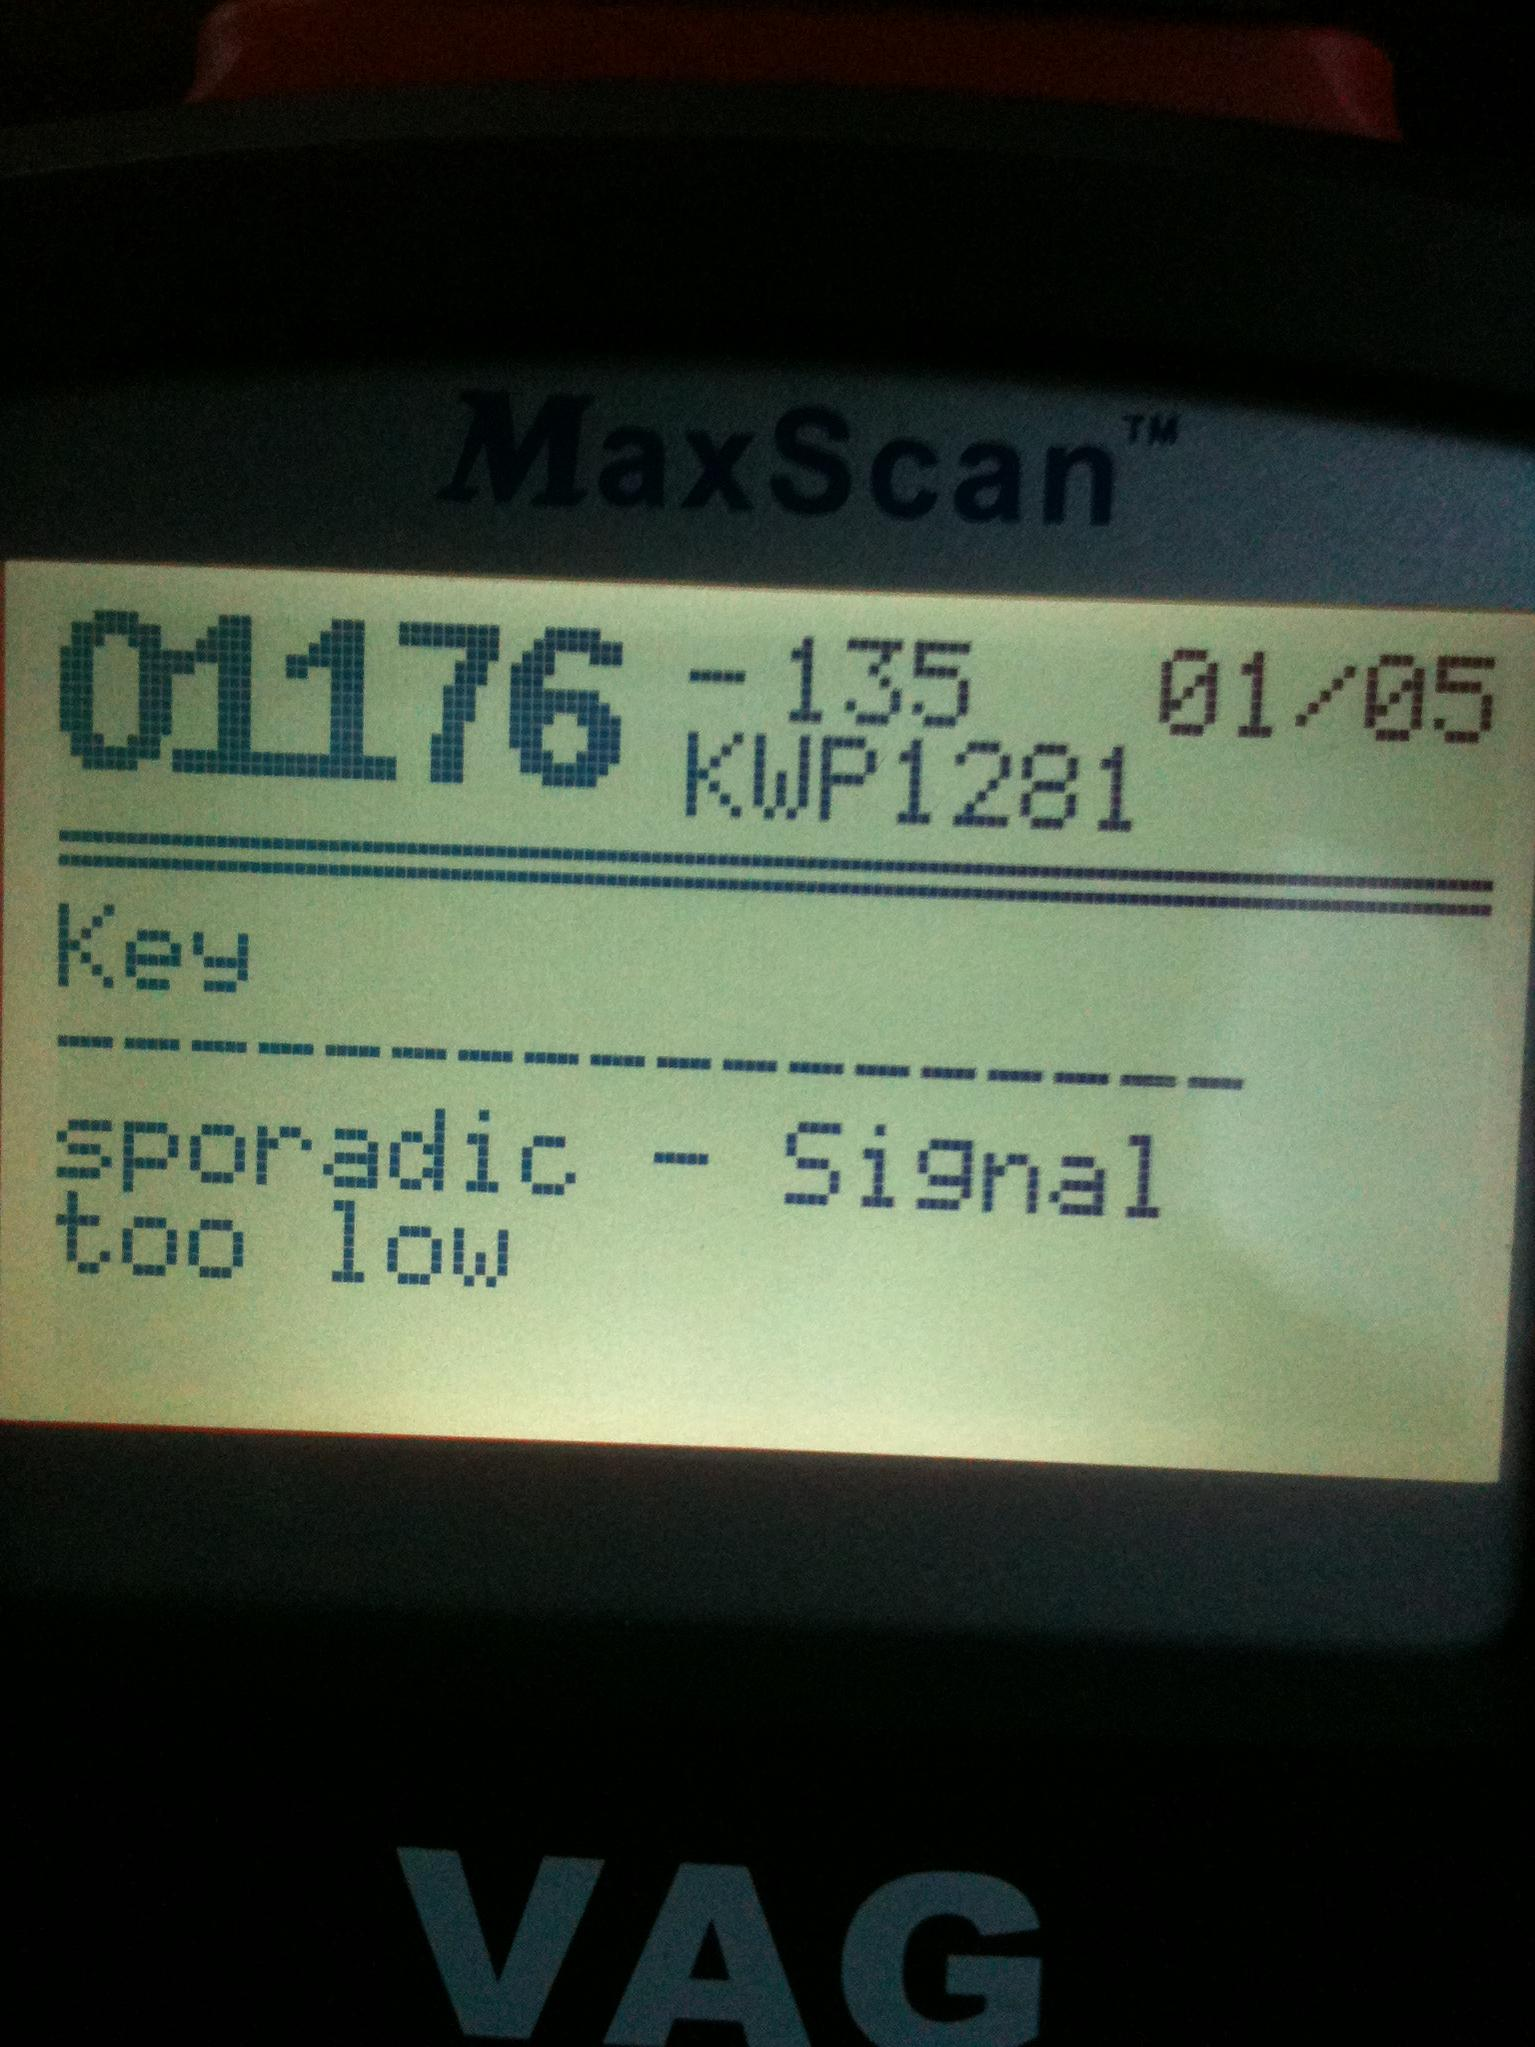 Steering angle sensor fault ??? what are these fault codes